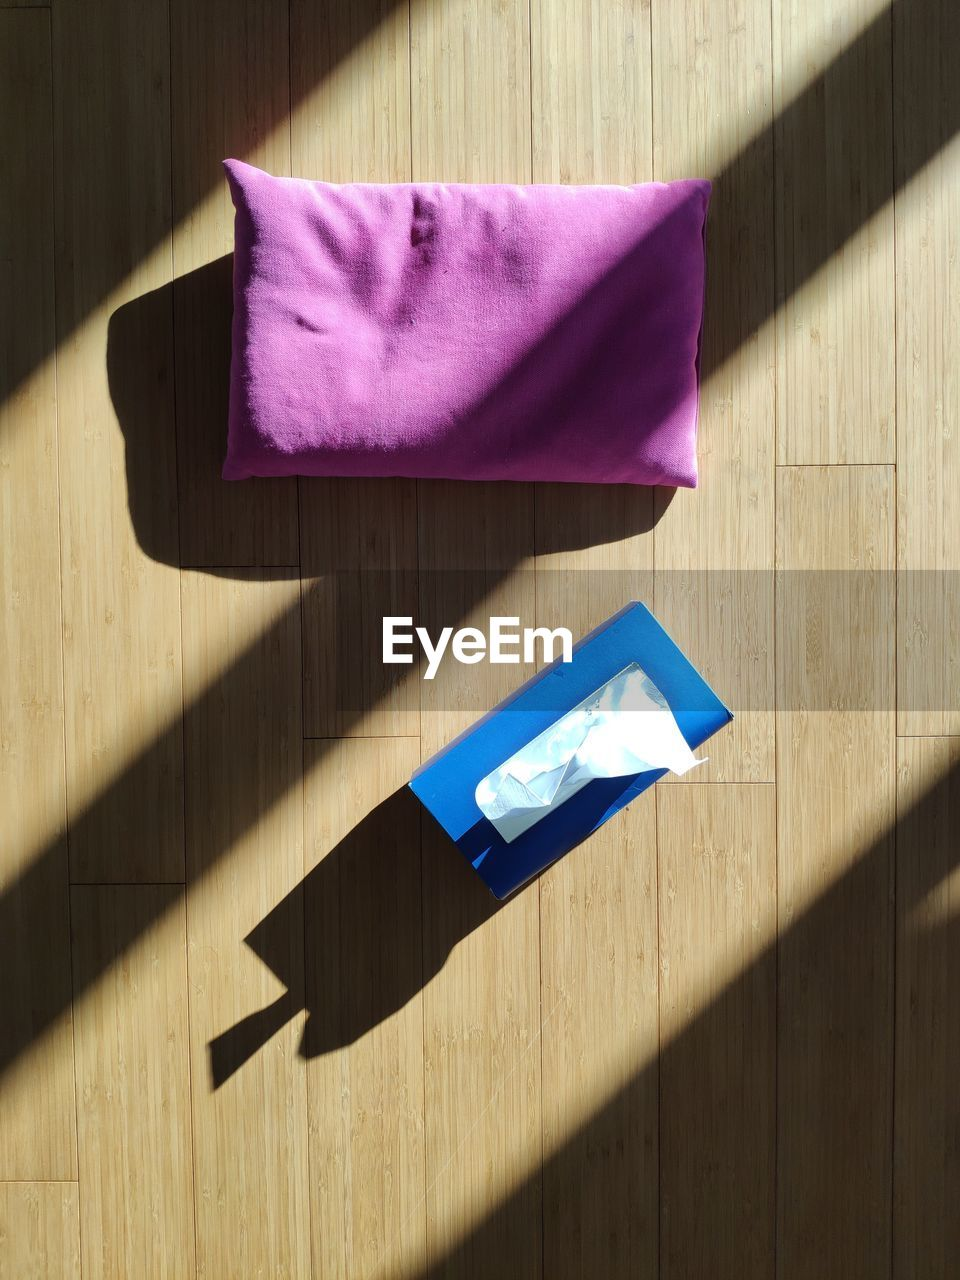 wood - material, no people, shadow, table, sunlight, indoors, art and craft, high angle view, paper, nature, still life, blue, origami, close-up, creativity, craft, day, flooring, wood, shape, purple